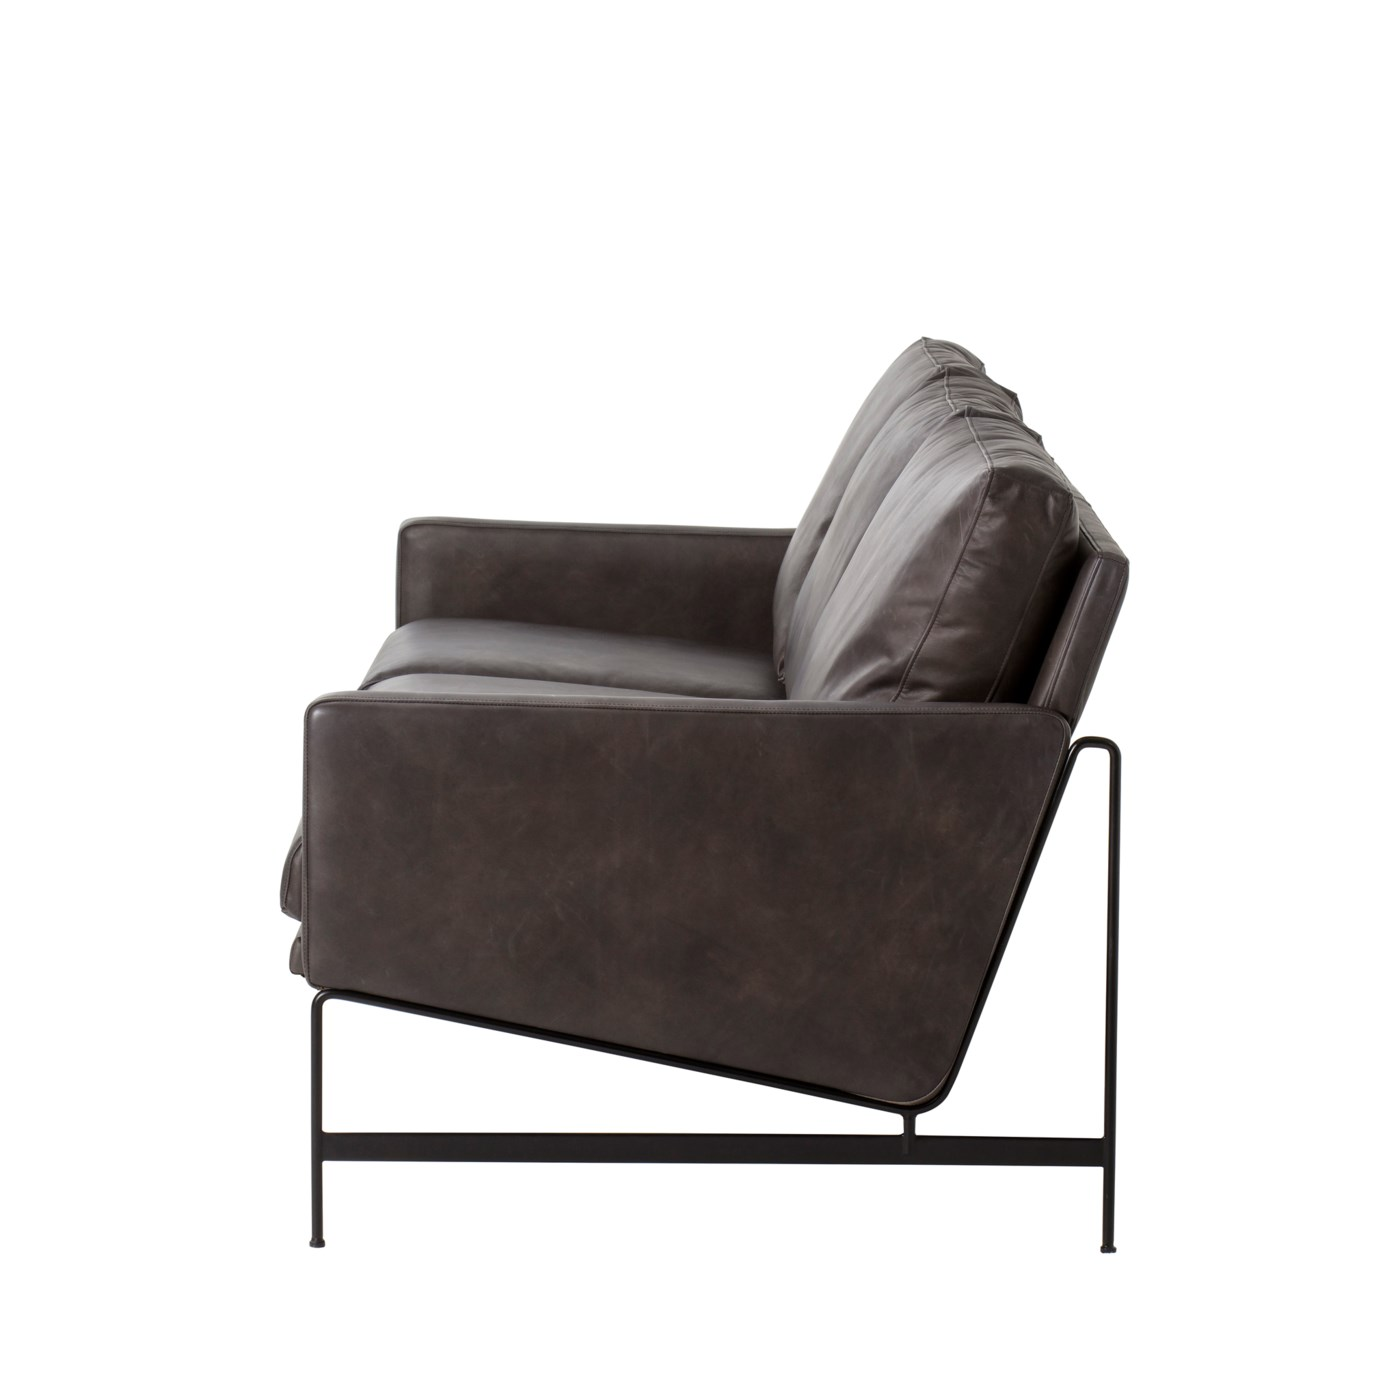 Vanessa 3 Seater Sofa - Destroyed Black Leather - - Sonder Distribution